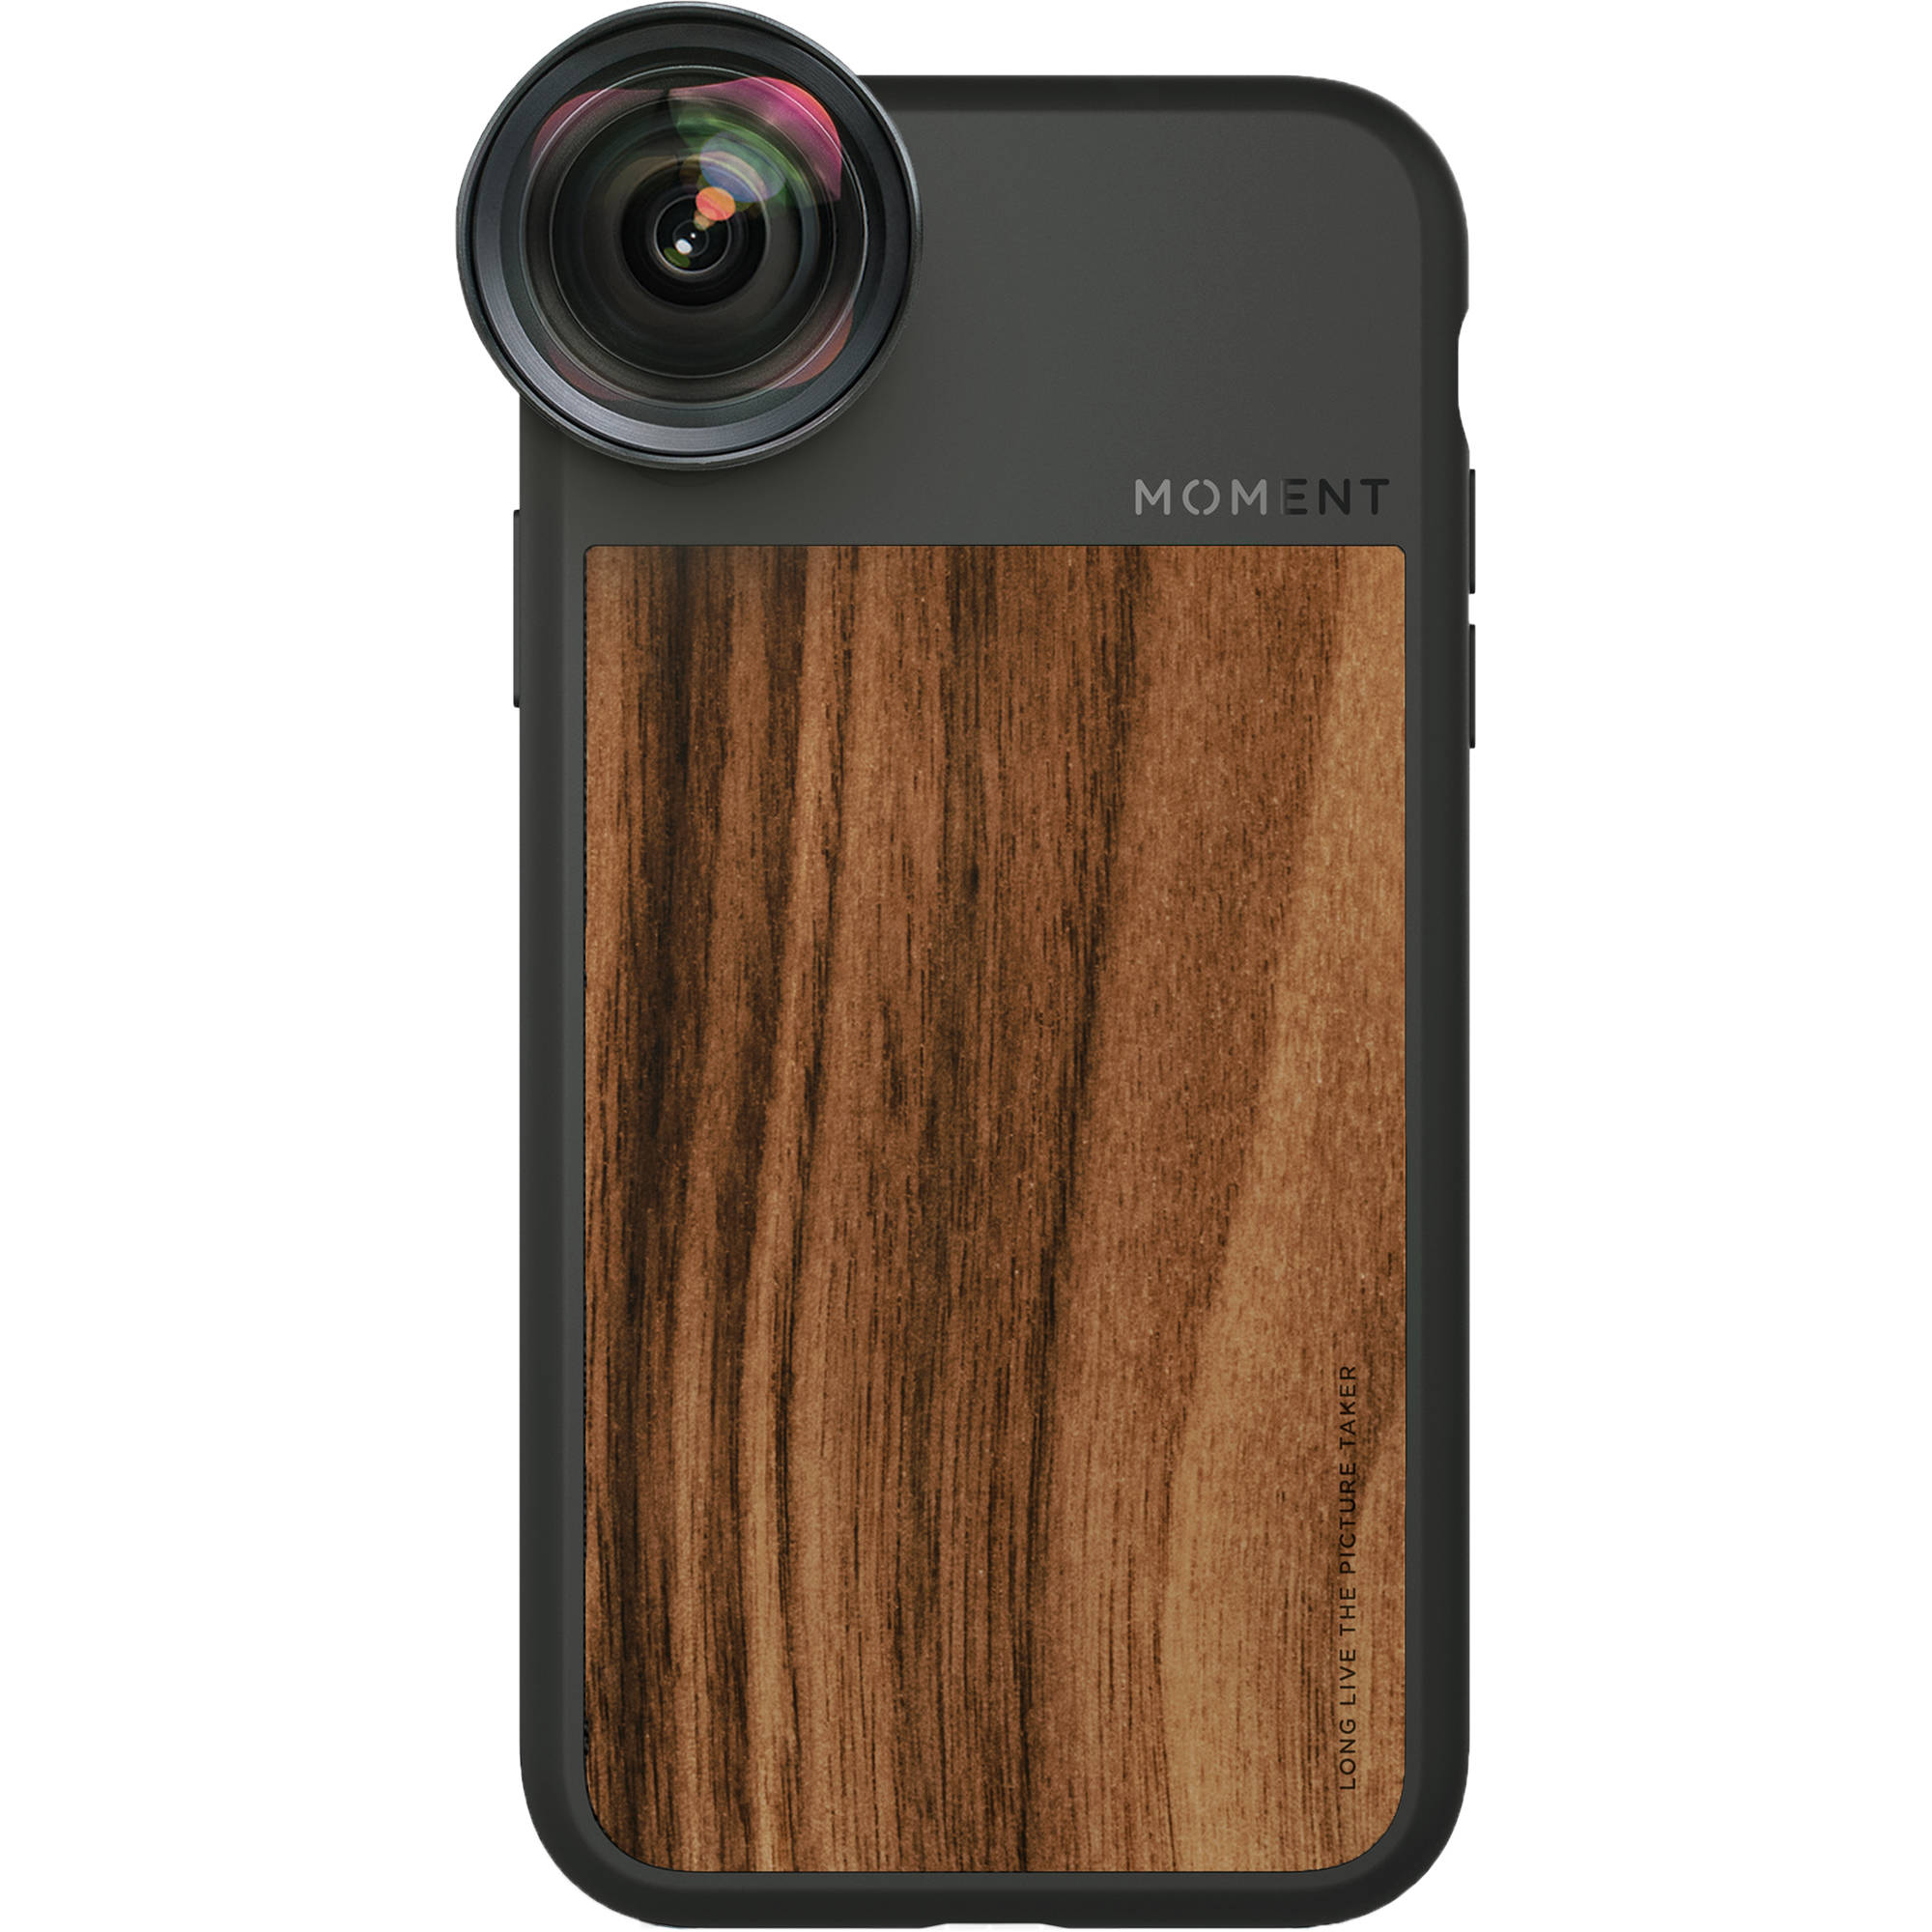 new concept 785c7 550e9 Moment Photo Case for the iPhone XR (Walnut)